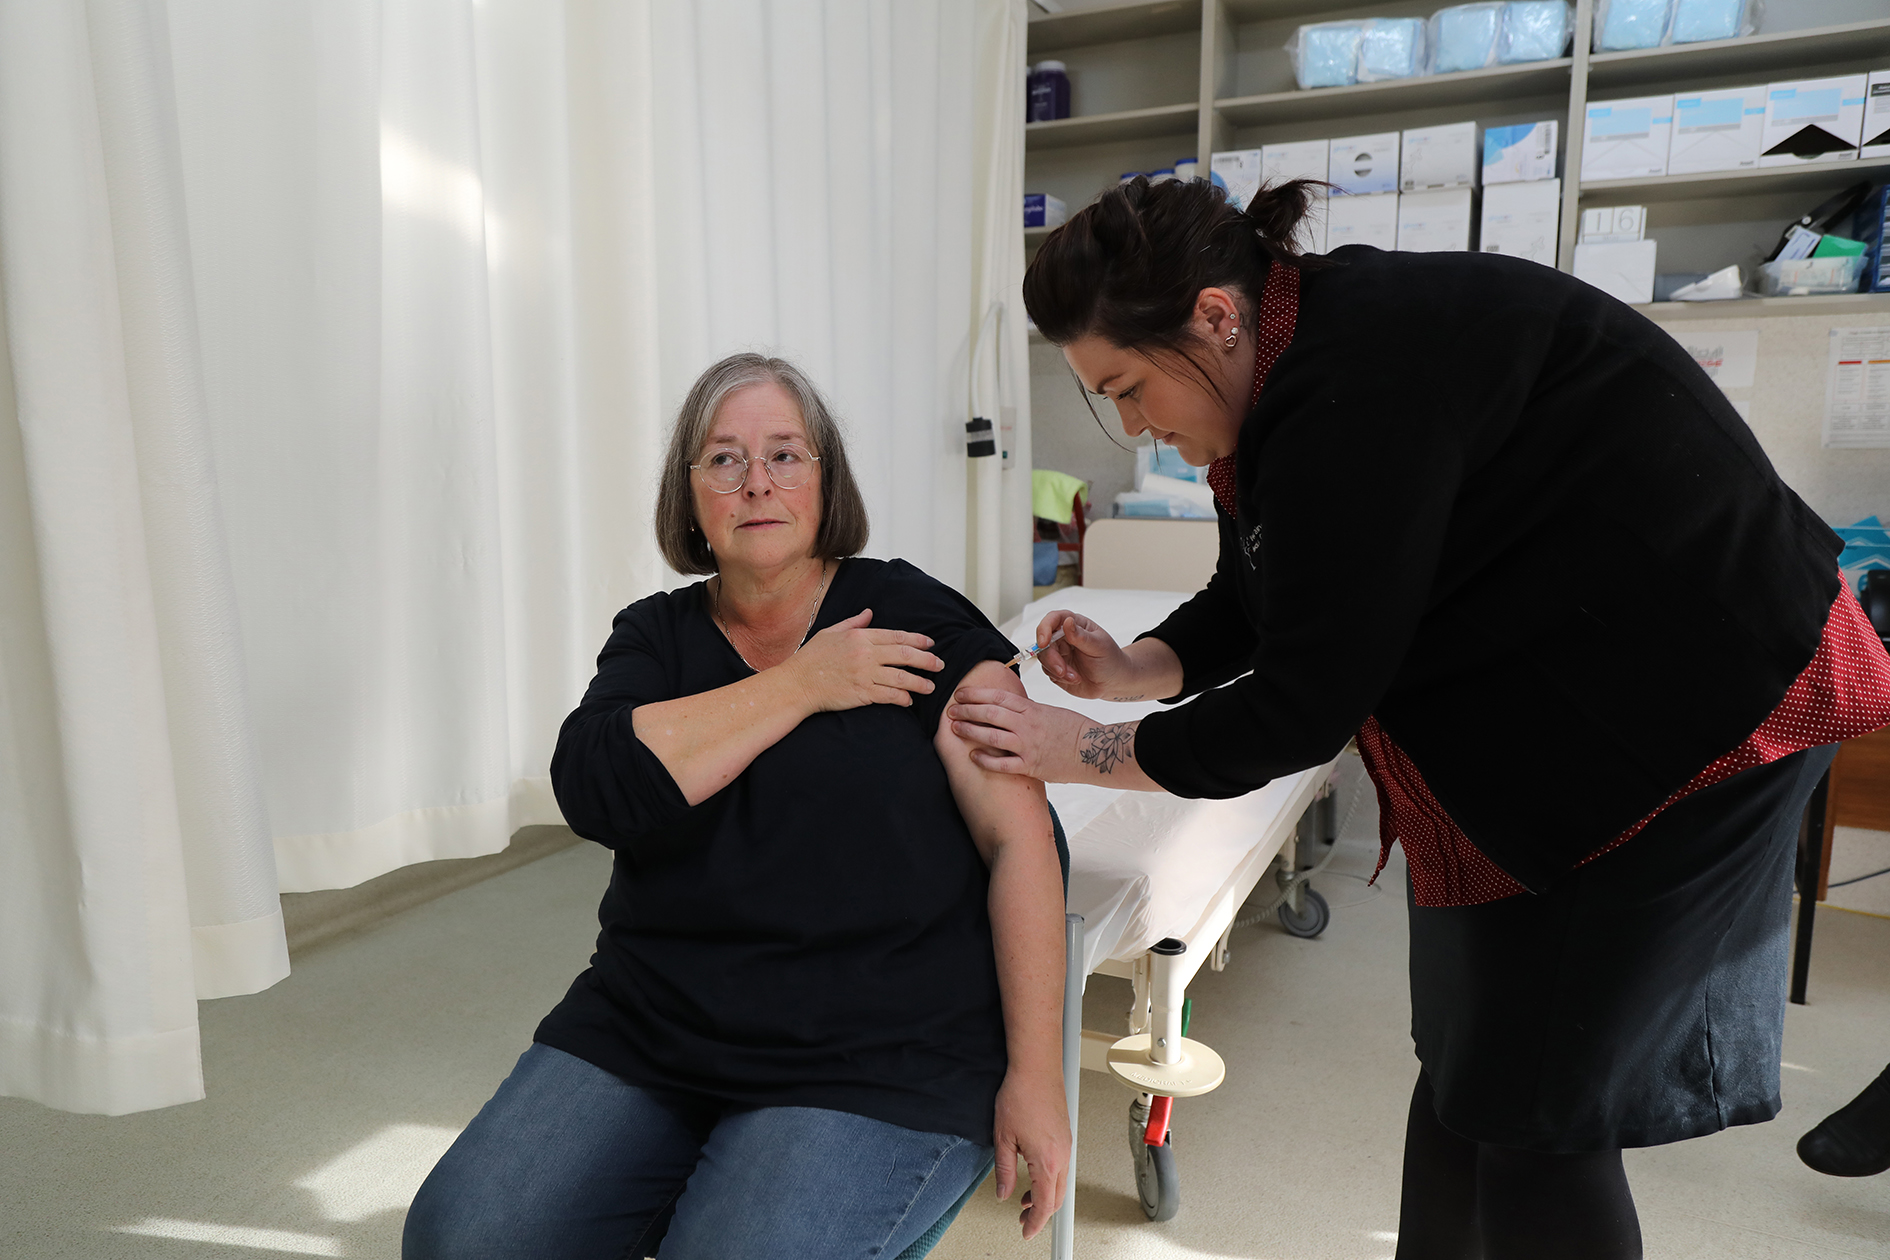 The Gazette editor, taking one for the team, courtesy of Deloraine Medical Centre.  Photo by Mike Moores